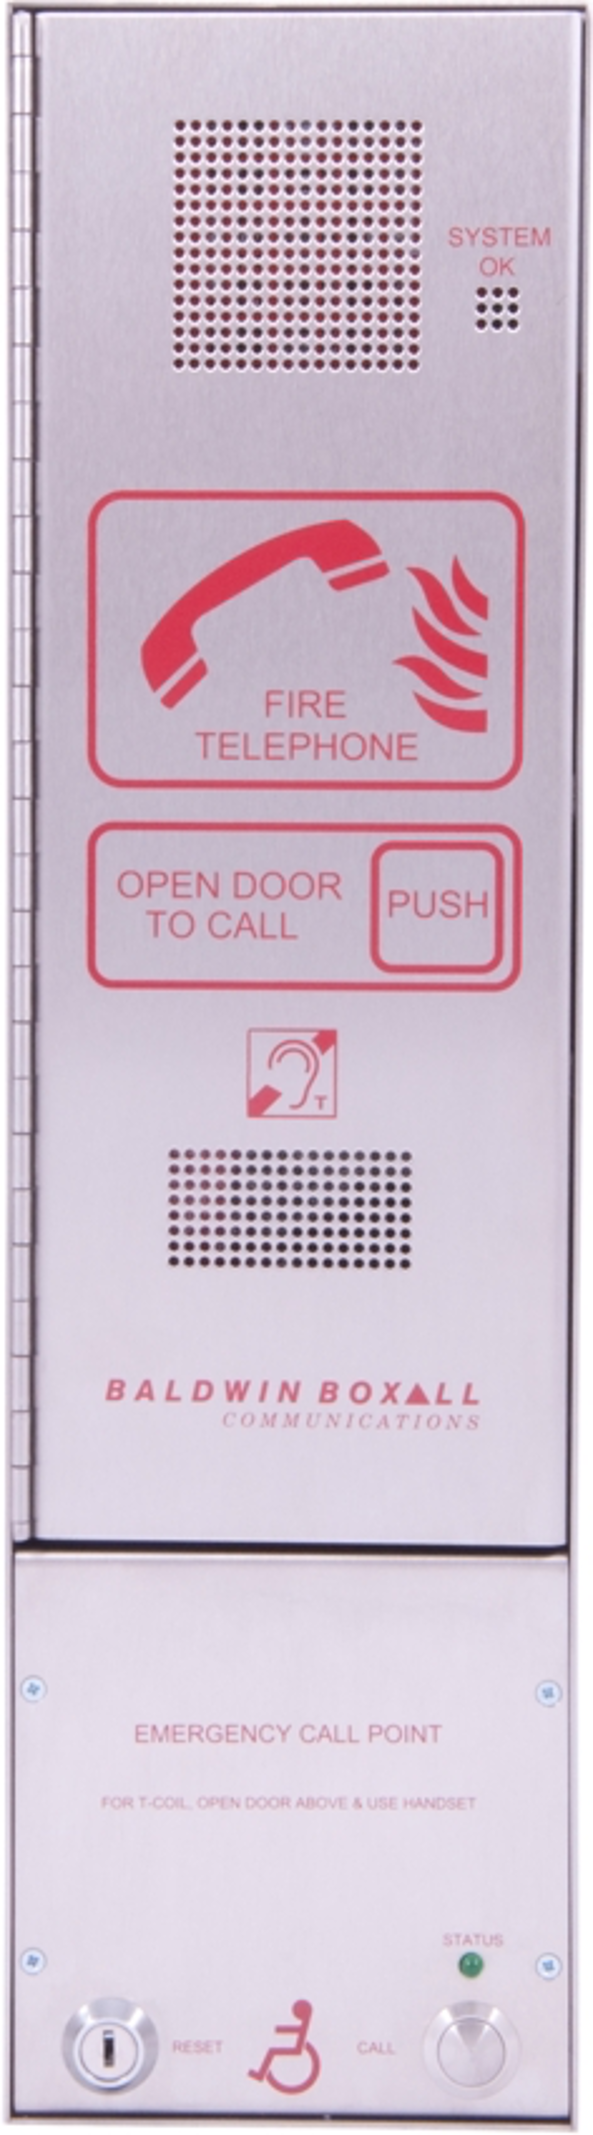 Baldwin Boxall OmniCare BVOCCSP Combined Type-A & Type-B Outstation Disabled Refuge & Fire Telephone Push Door Stainless Steel